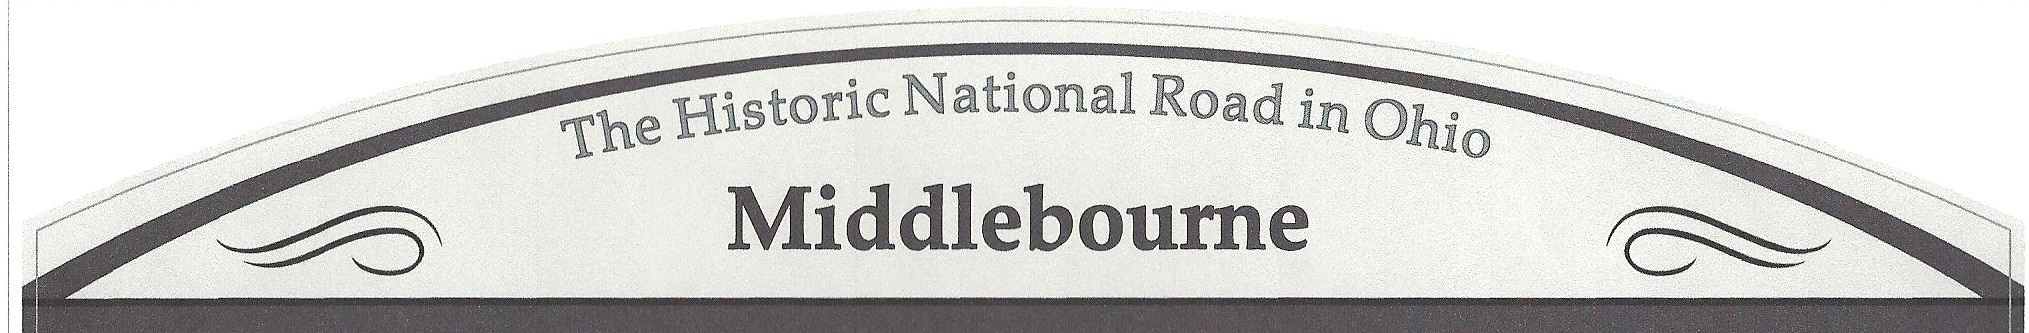 Middlebourne Sign 001